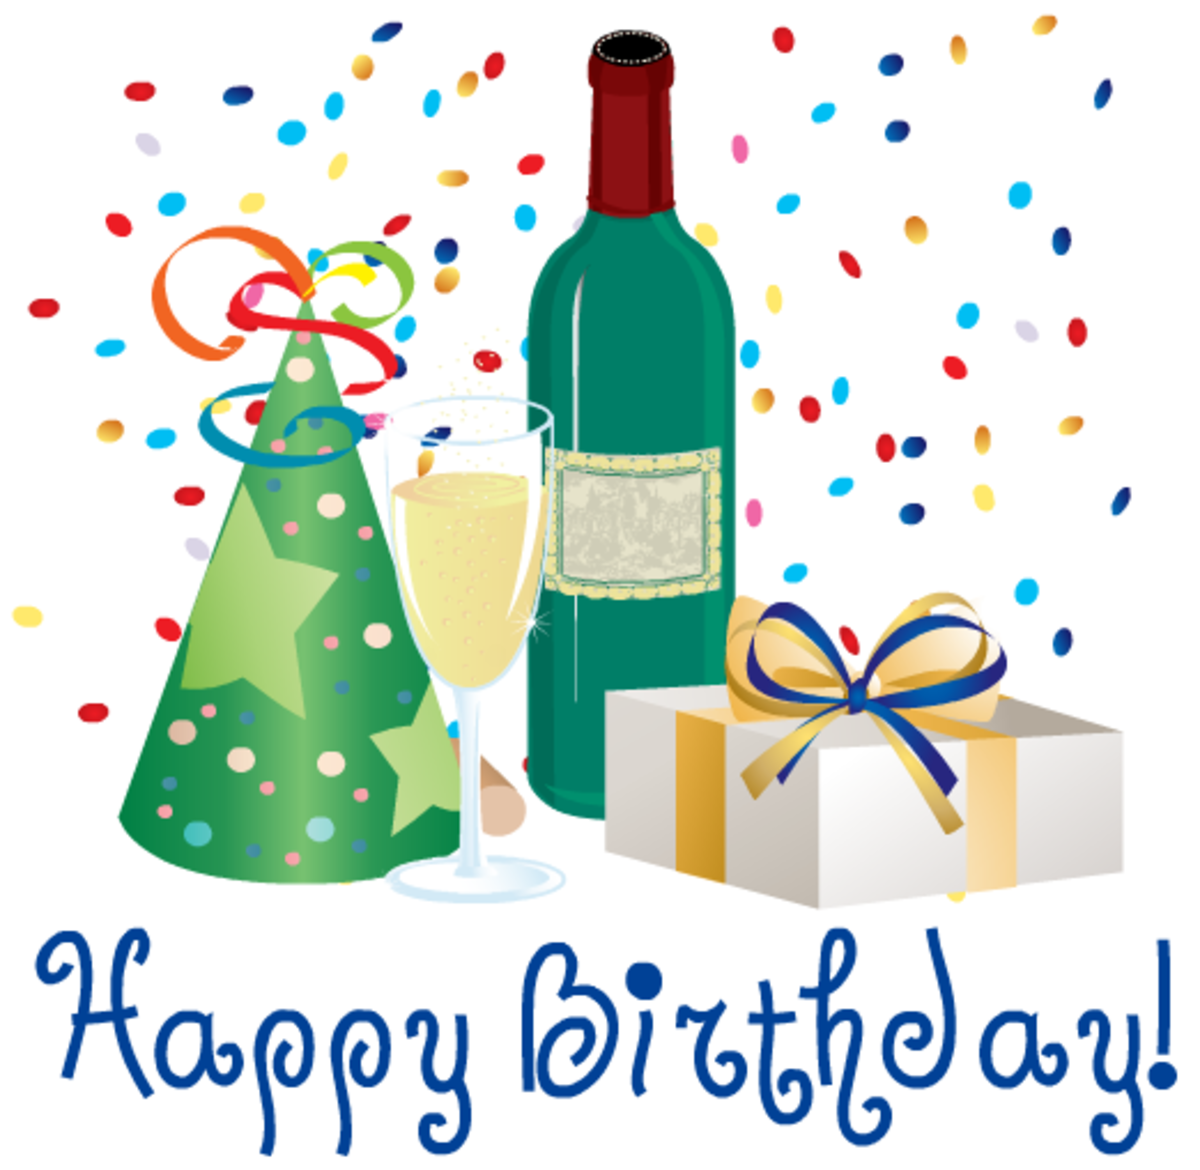 Birthday hat, wine, wine bottle  and present clipart